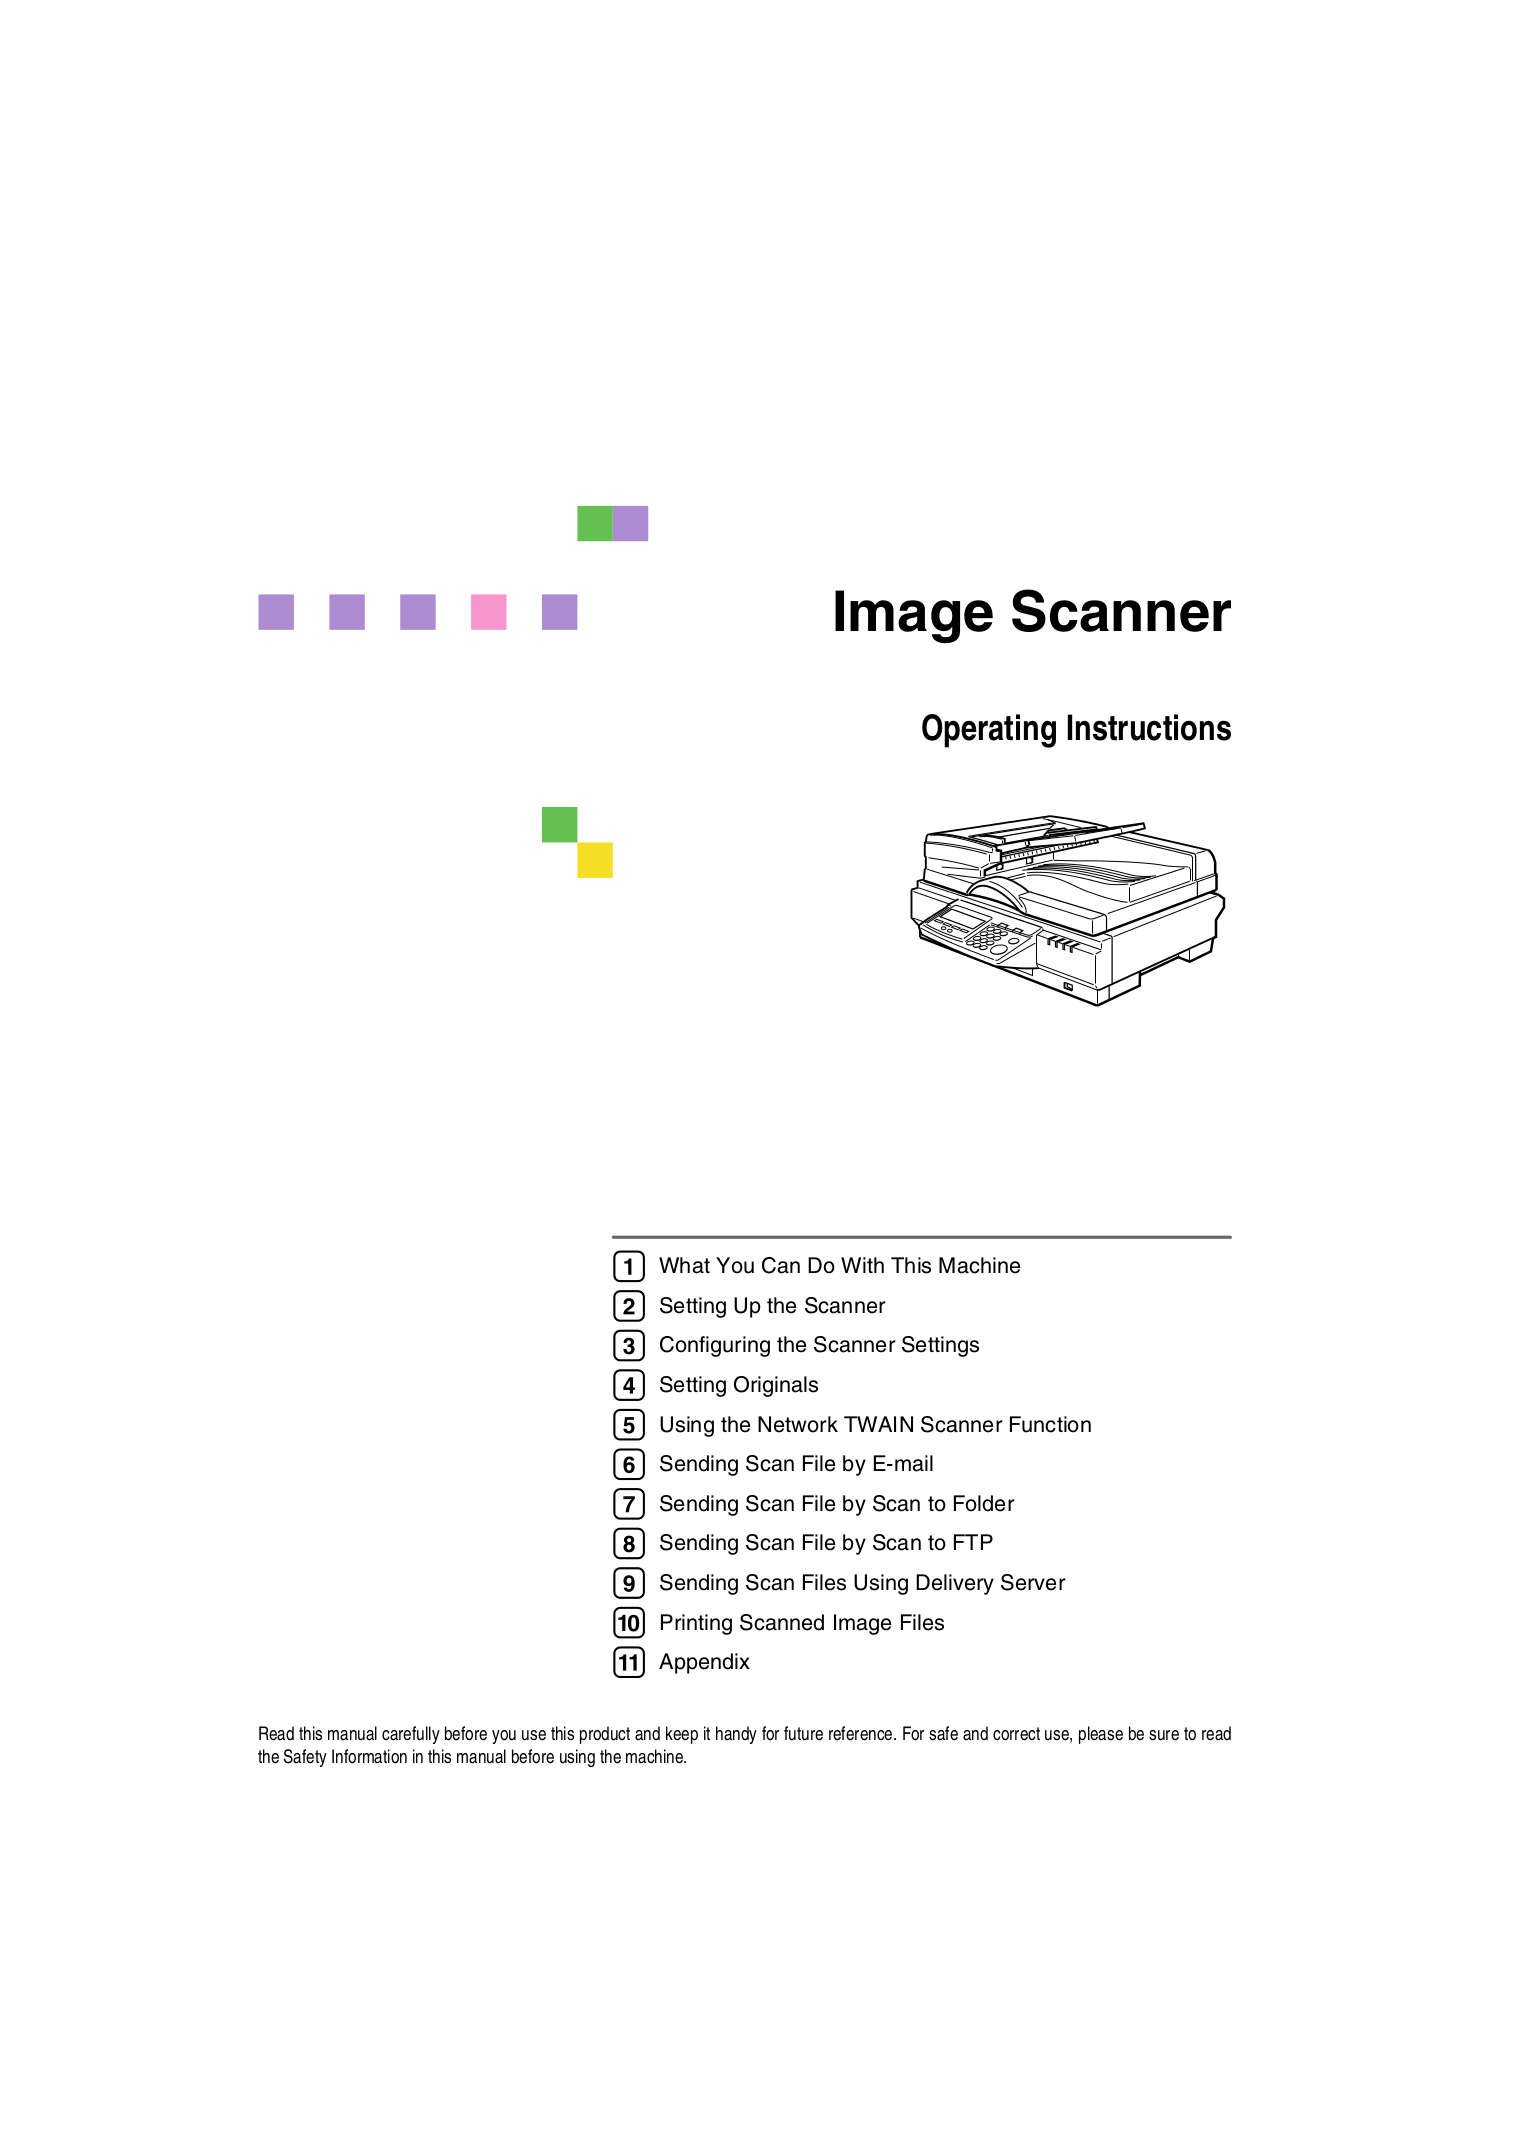 pdf for Ricoh Scanner IS300e manual